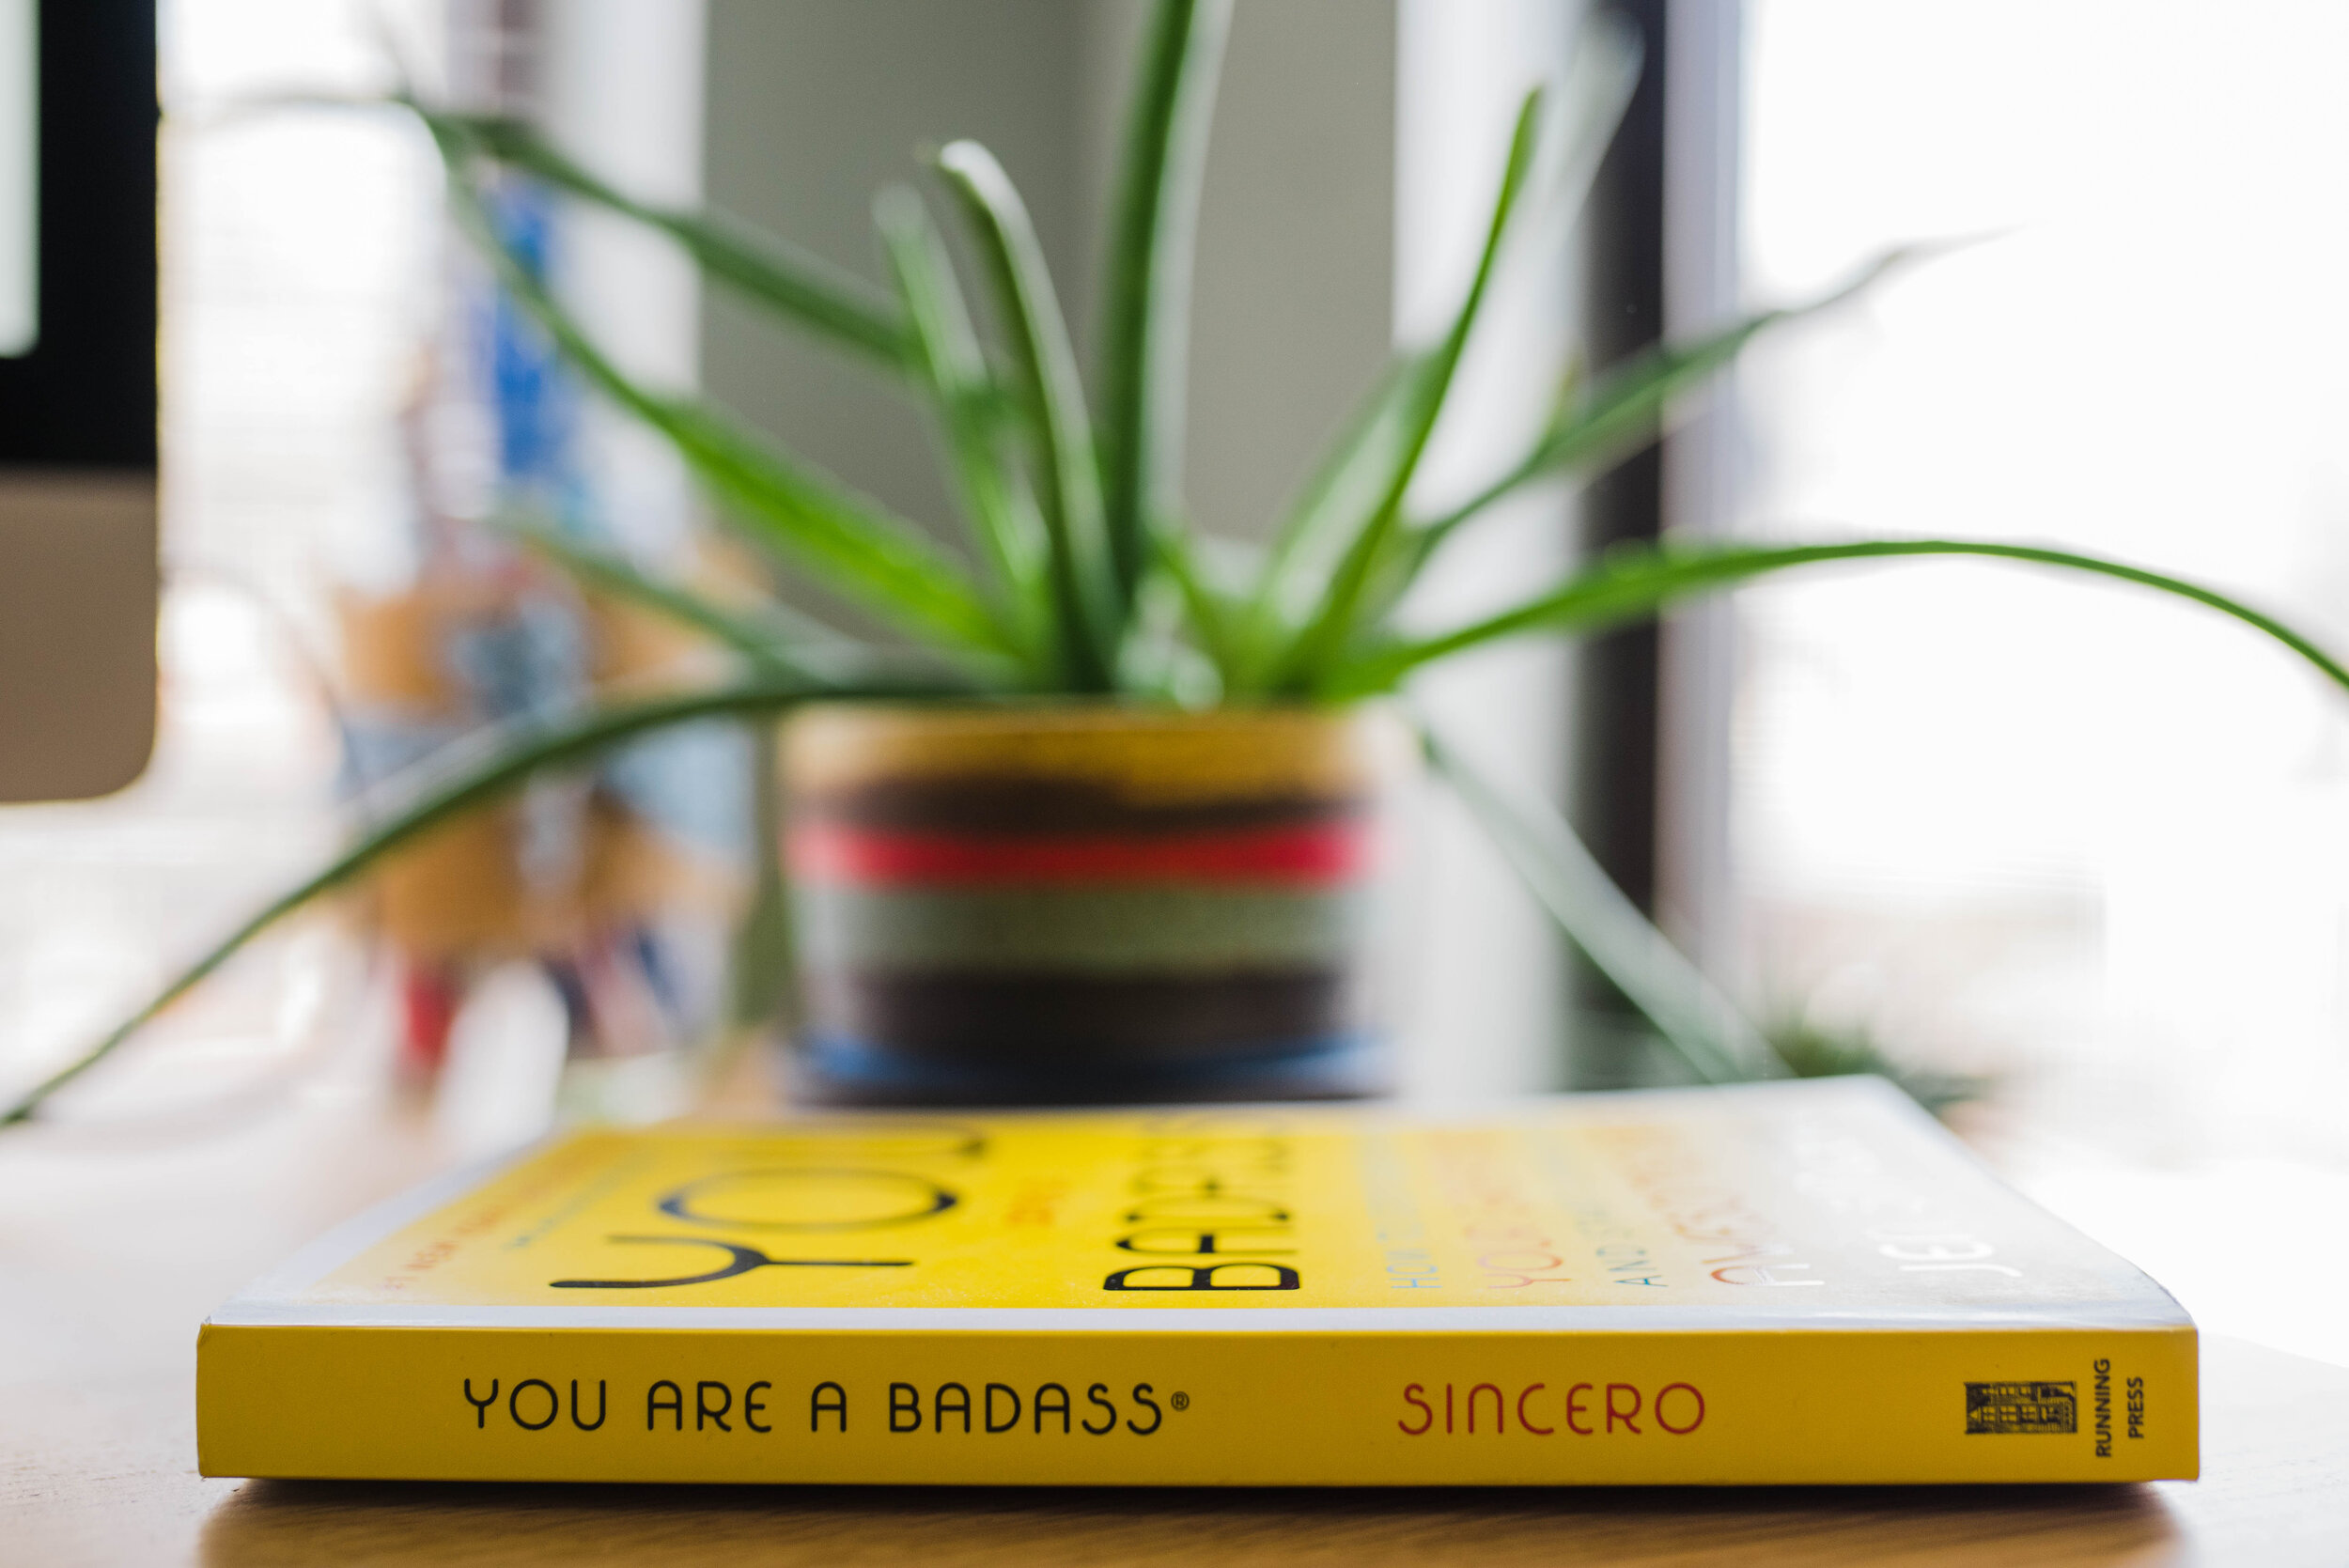 You-are-a-badass-book